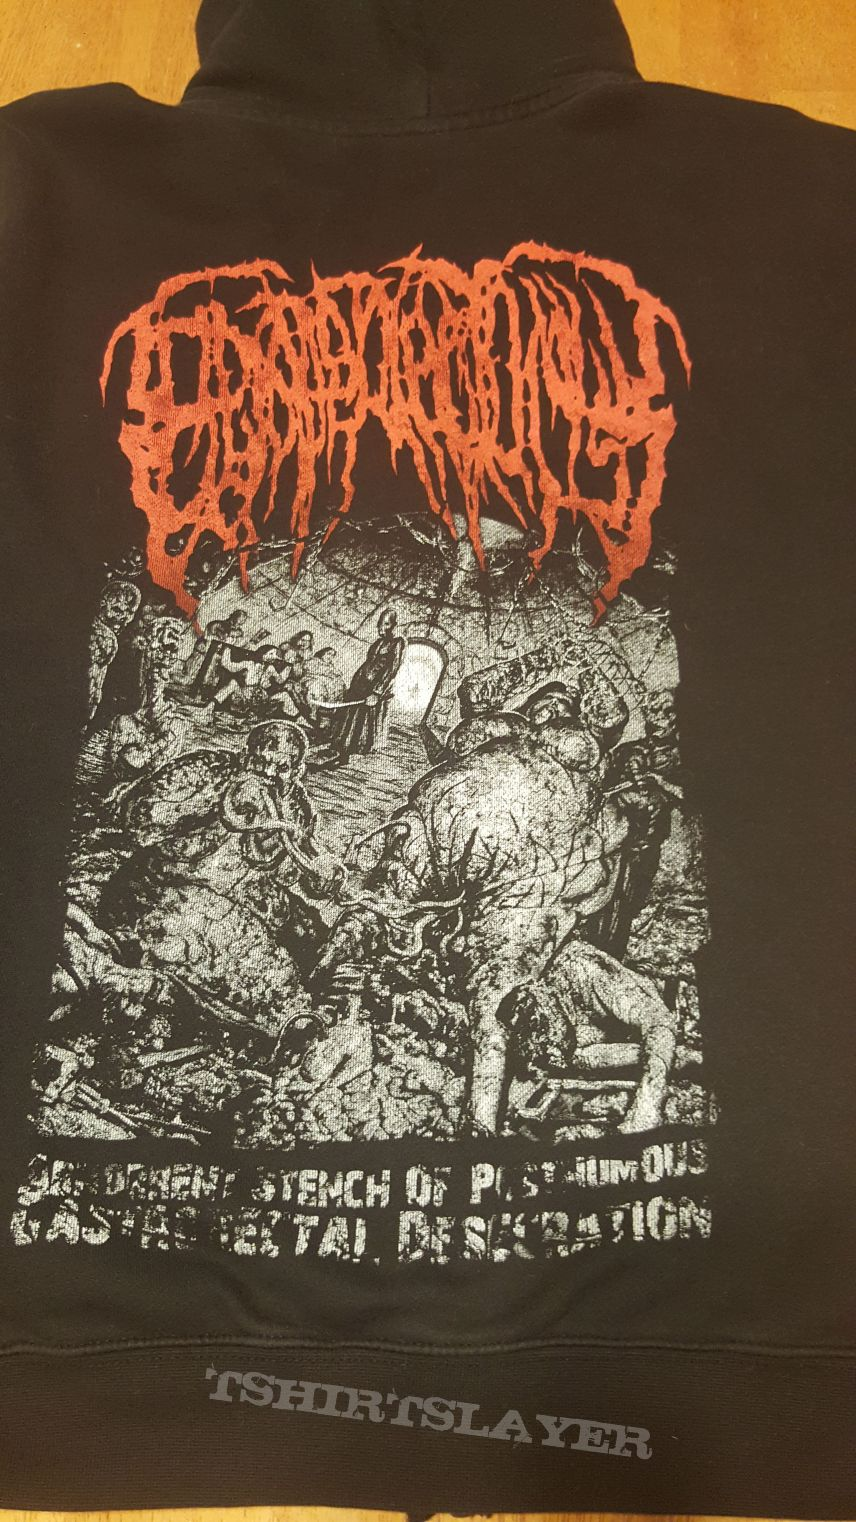 Epicardiectomy - Abohorrent Stench of Posthumous Gastrorectal Desecration - Zip Hoodie - L